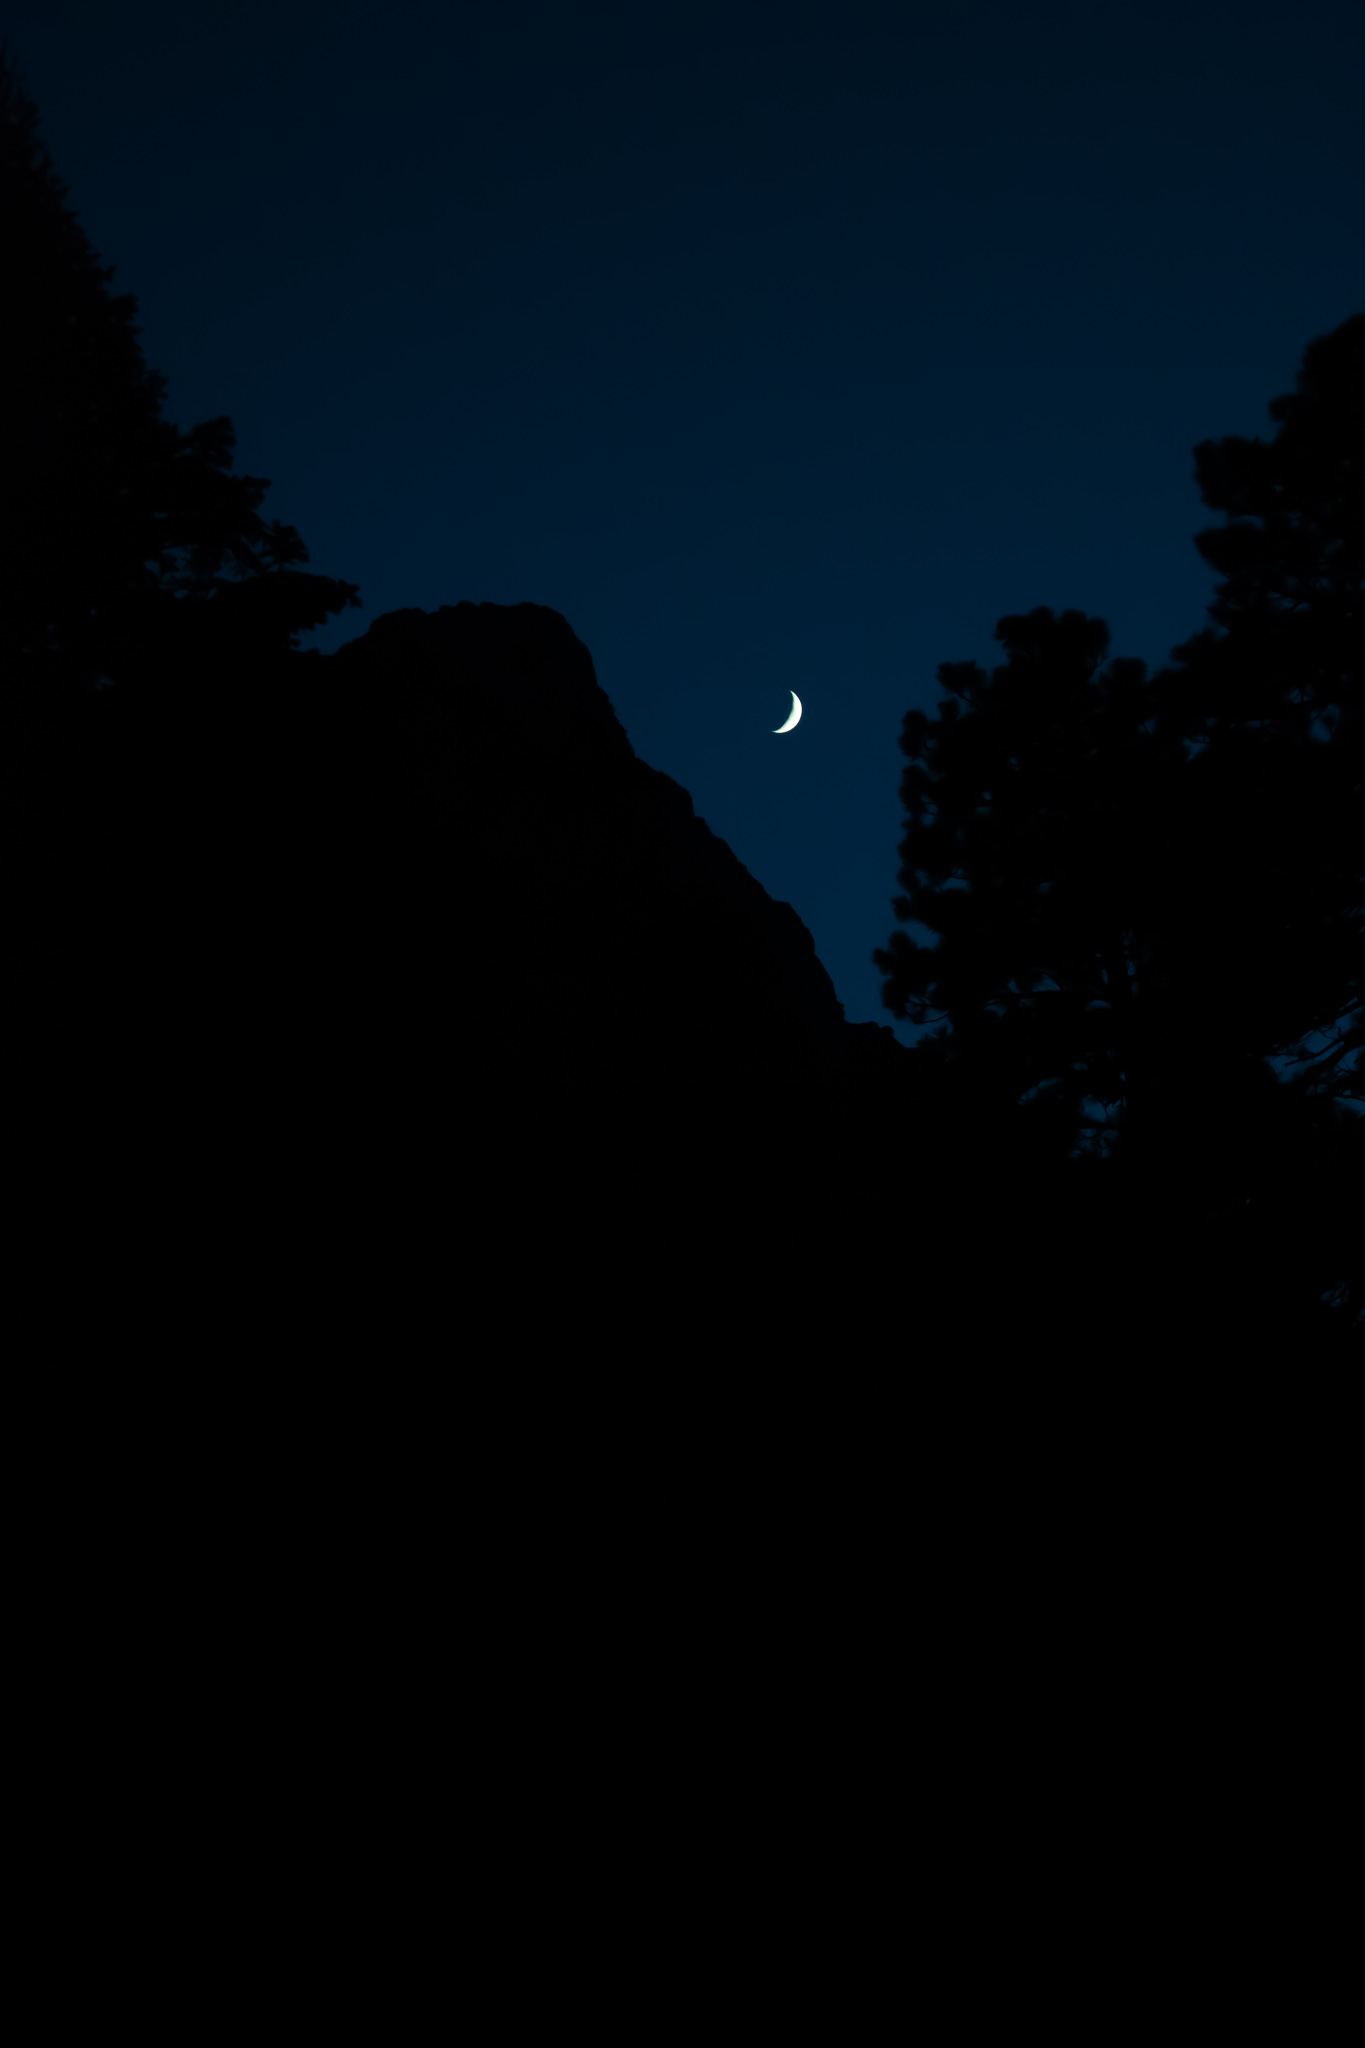 wishing I could have been practicing some star shooting this night but instead the moon was perfectly placed near Cathedral rock and some dope trees. pictures don't really do it justice especially since I am still learning the hang of this camera thang but we learning.